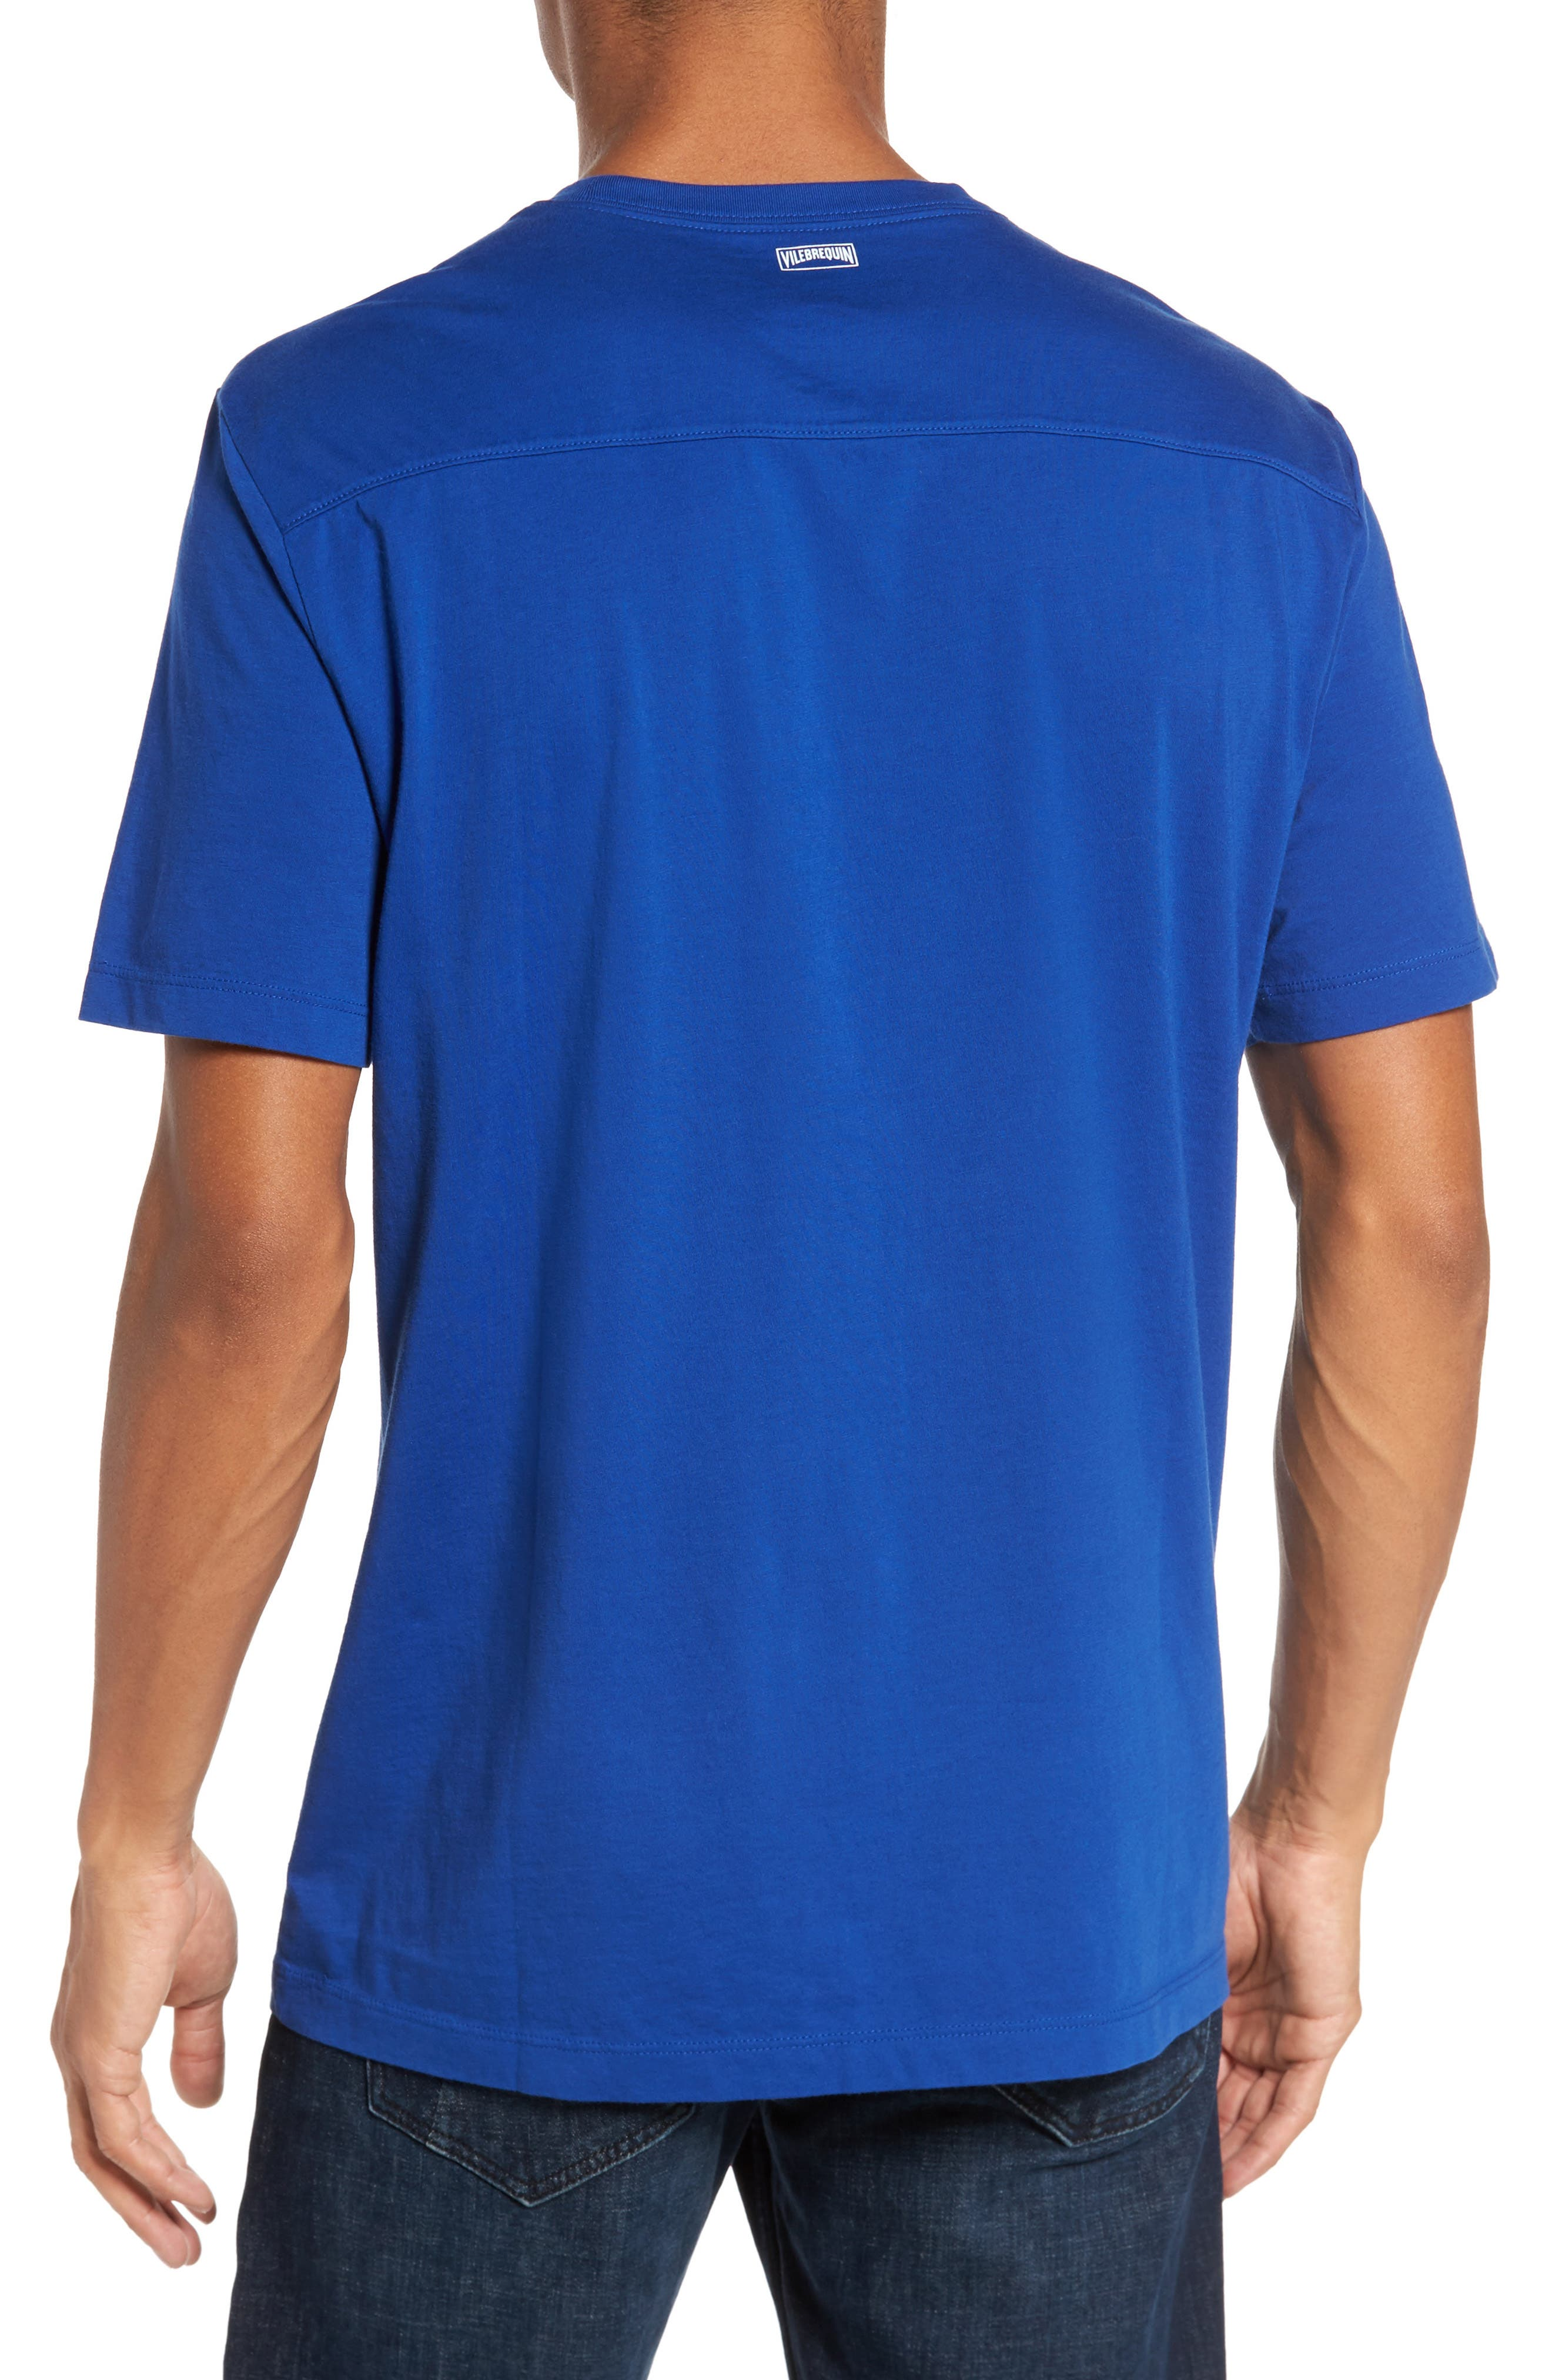 Alternate Image 2  - Vilebrequin Classic Fit Pocket T-Shirt